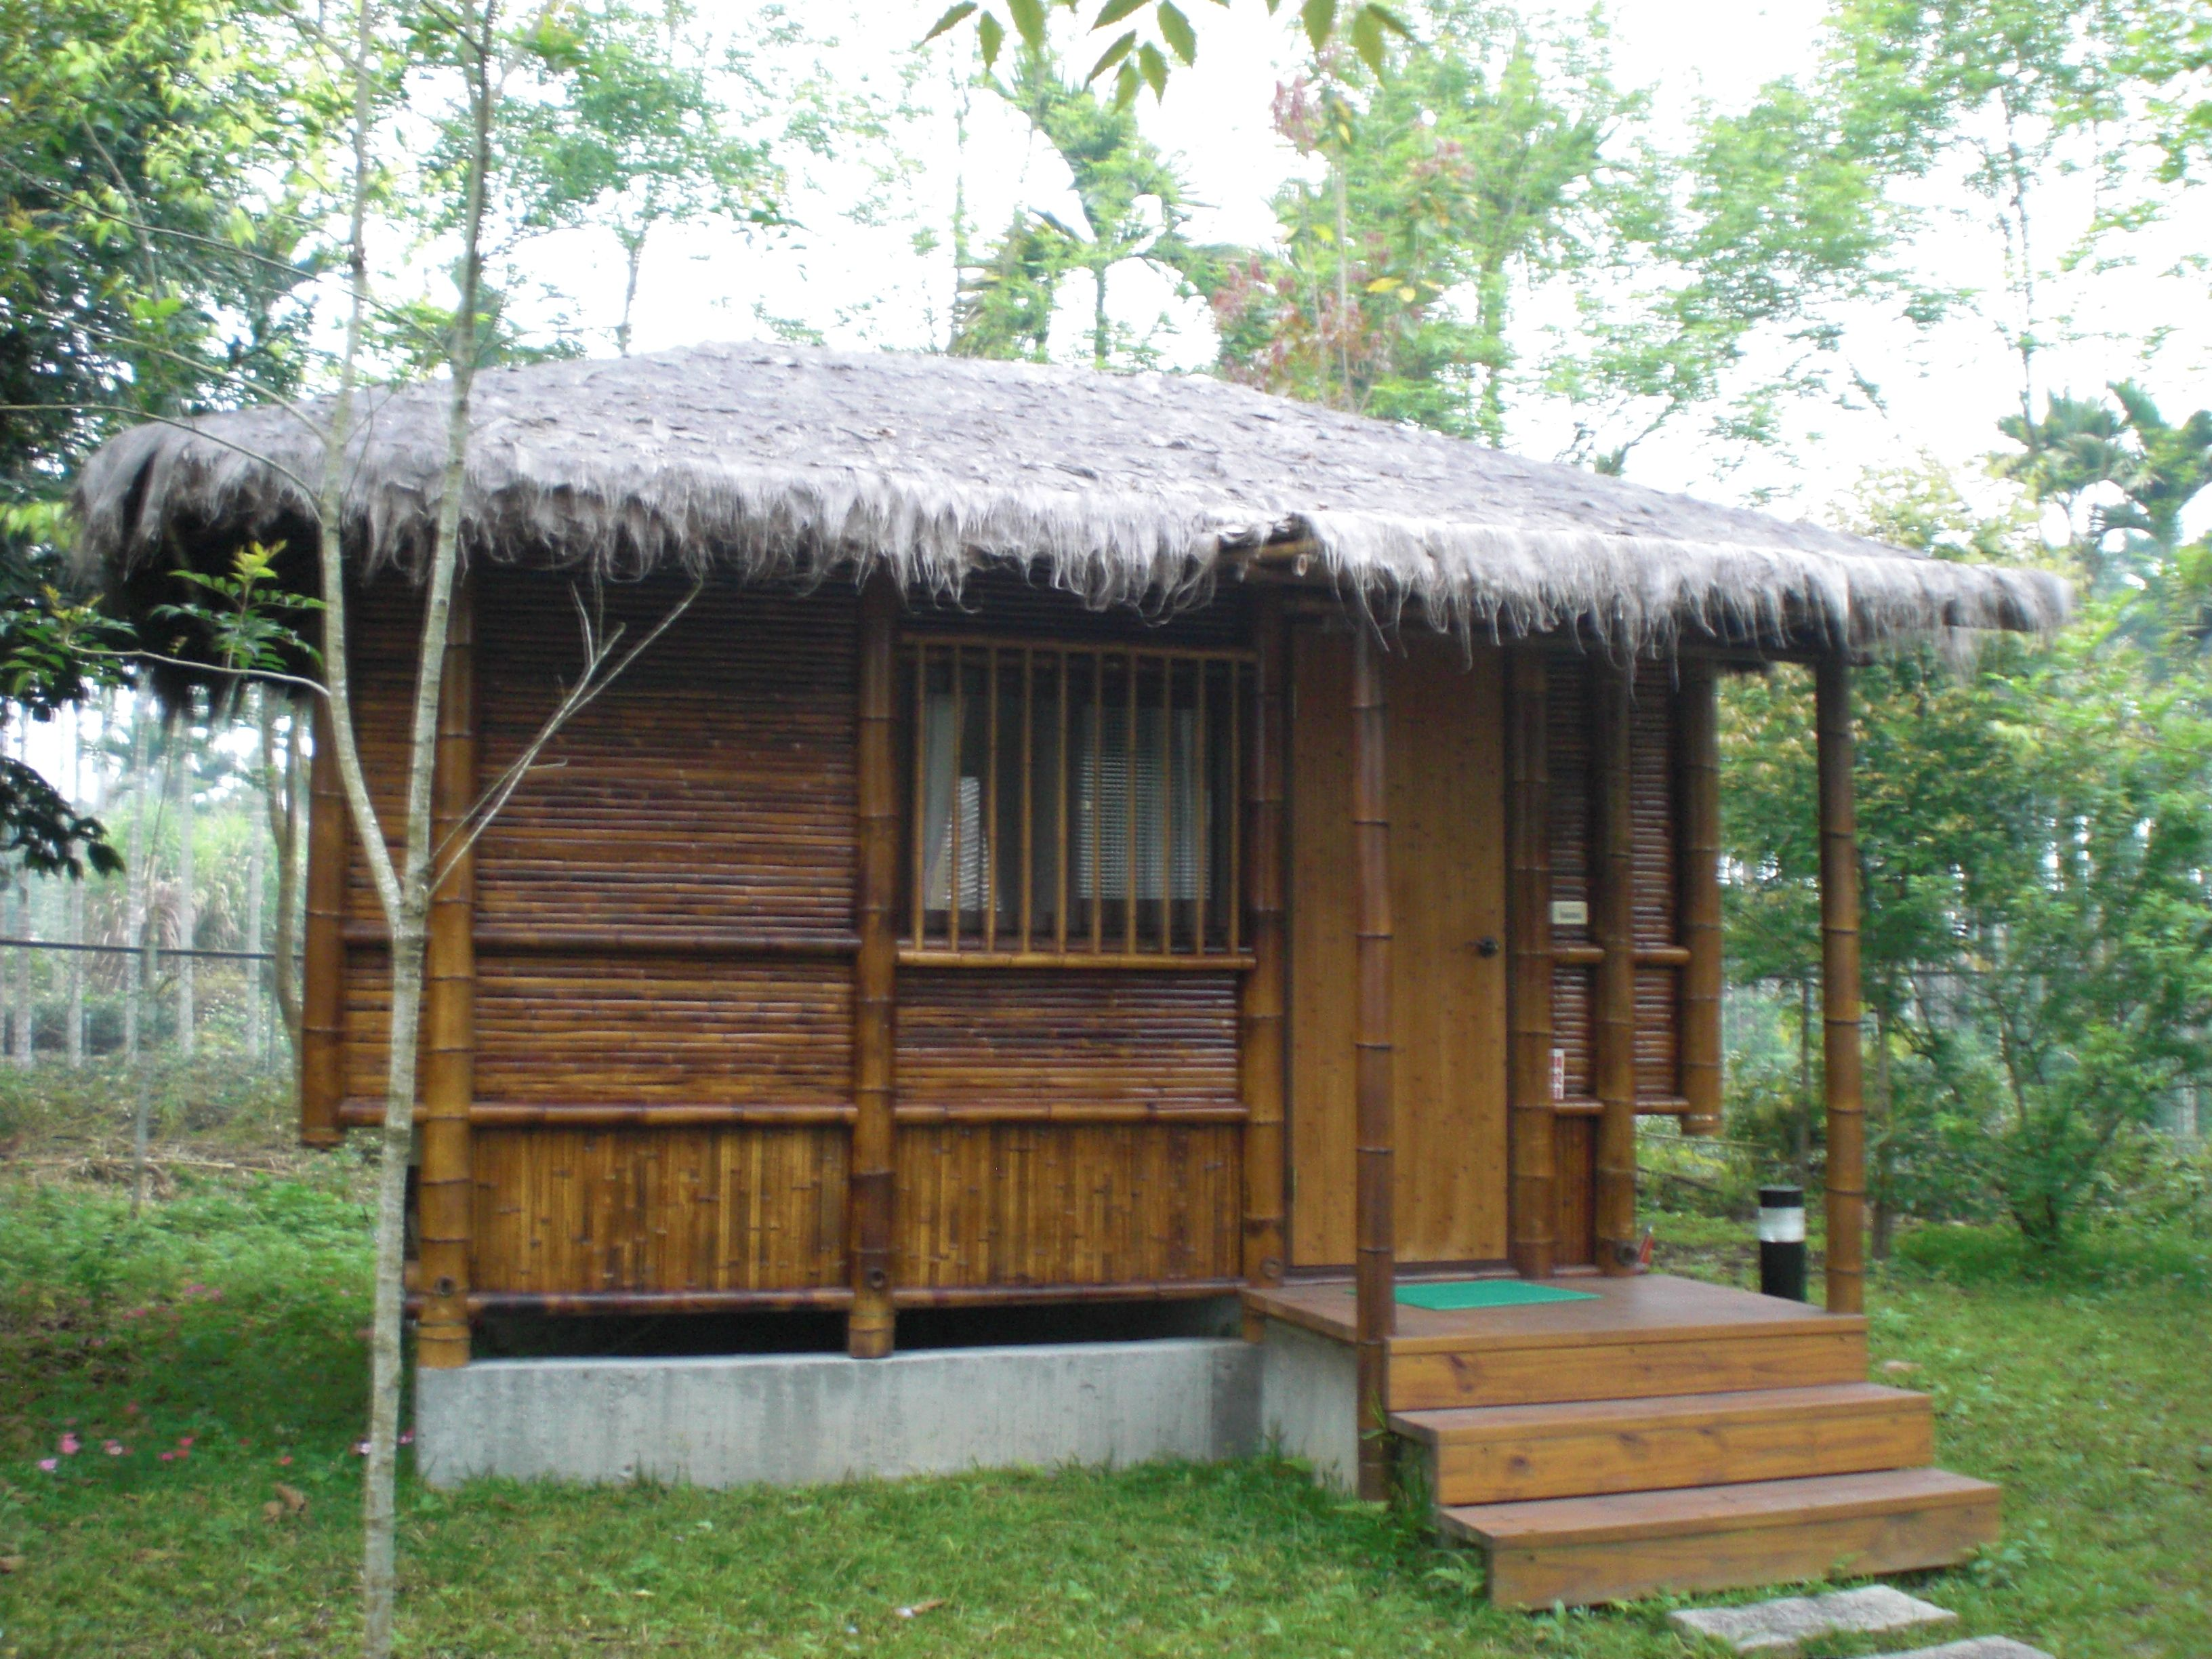 Bamboo hut in taiwan ♥ cozy and fun bamboo house design treehouse cabins